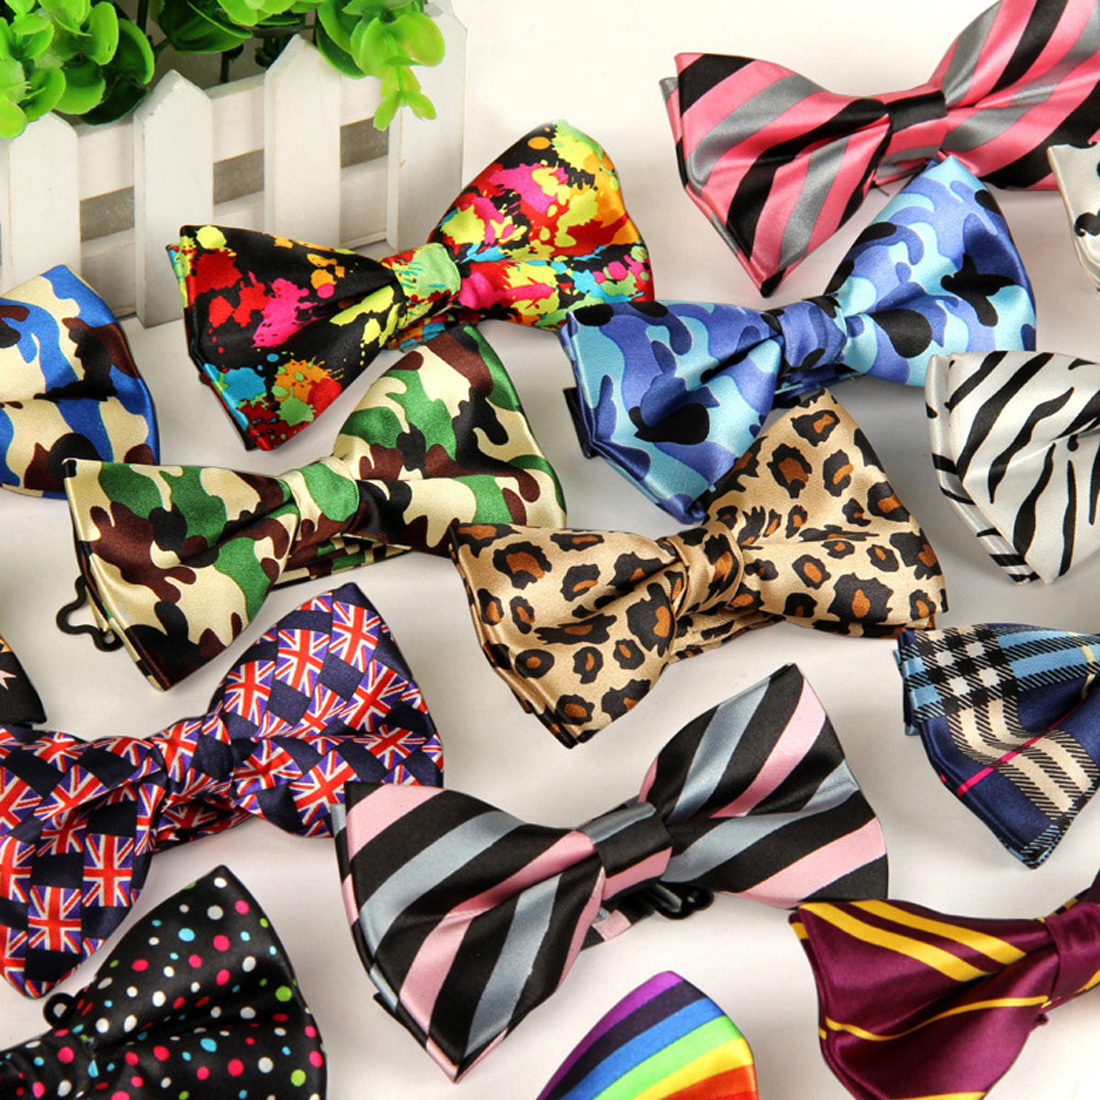 39 Color Adjustable Men's Bowtie Polyester Cartoon Man Floral Dot Bows Tie Wedding Celebration Party Butterfly Birthday Necktie